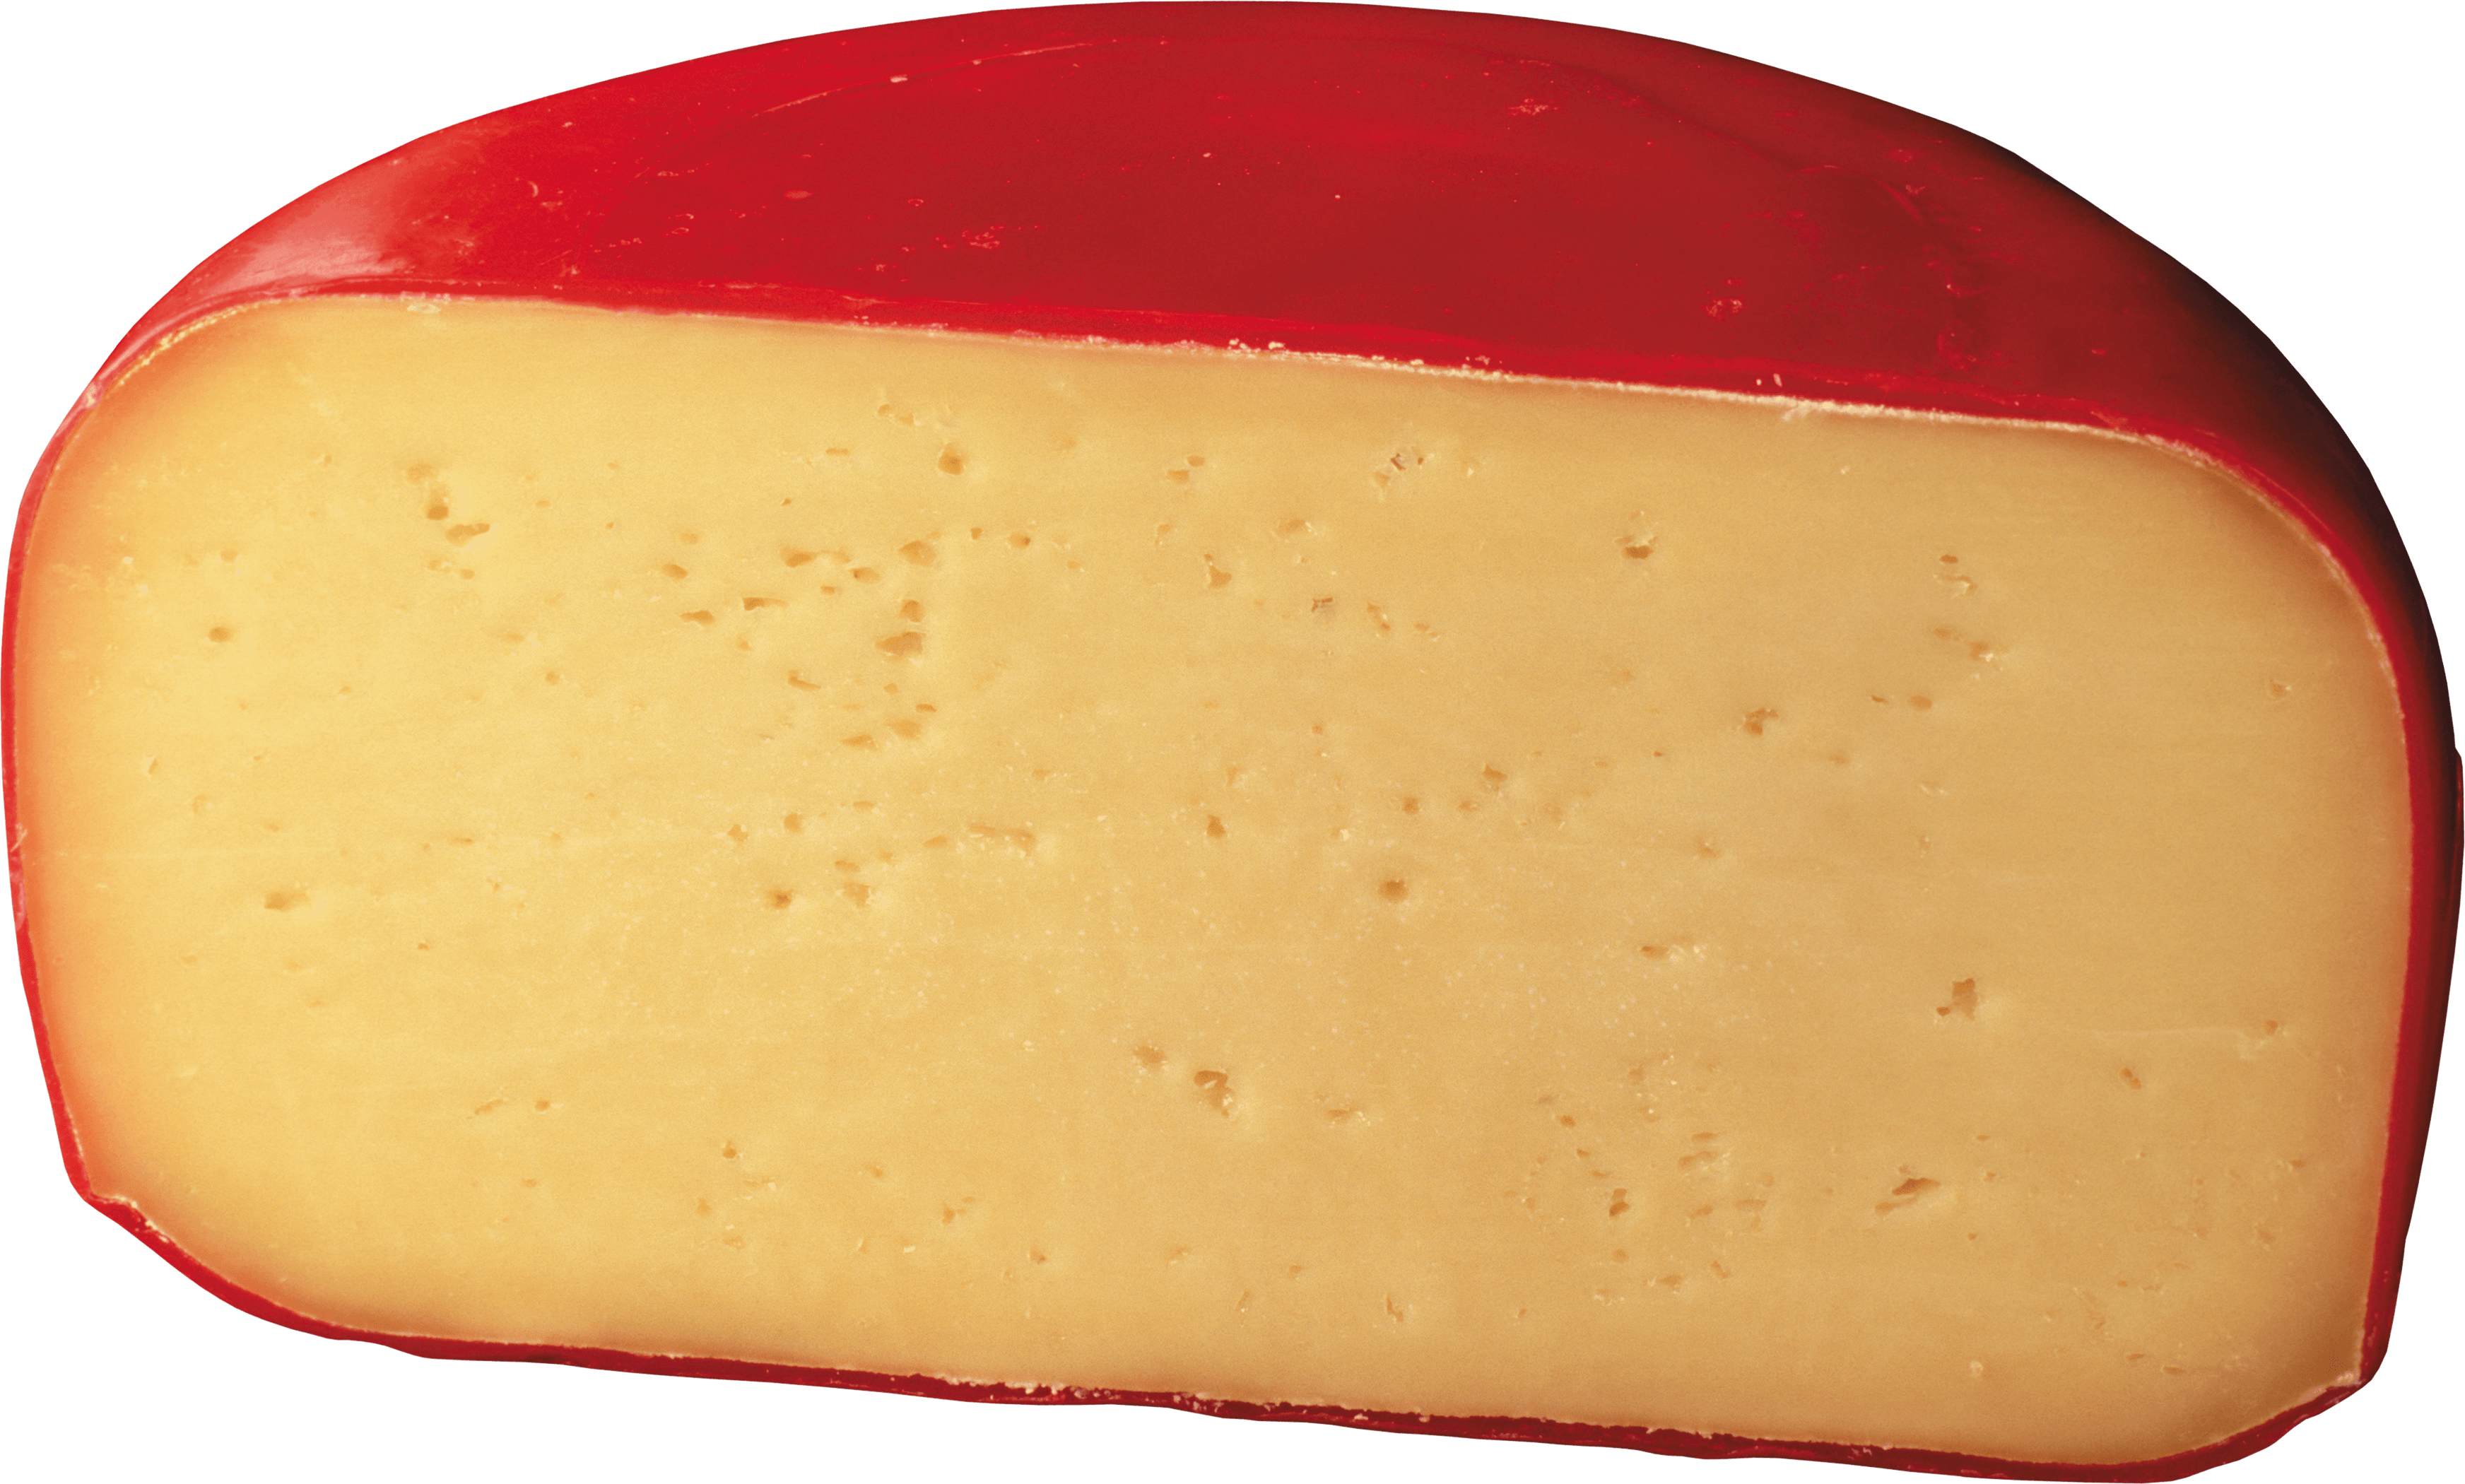 Cheese Png Image PNG Image